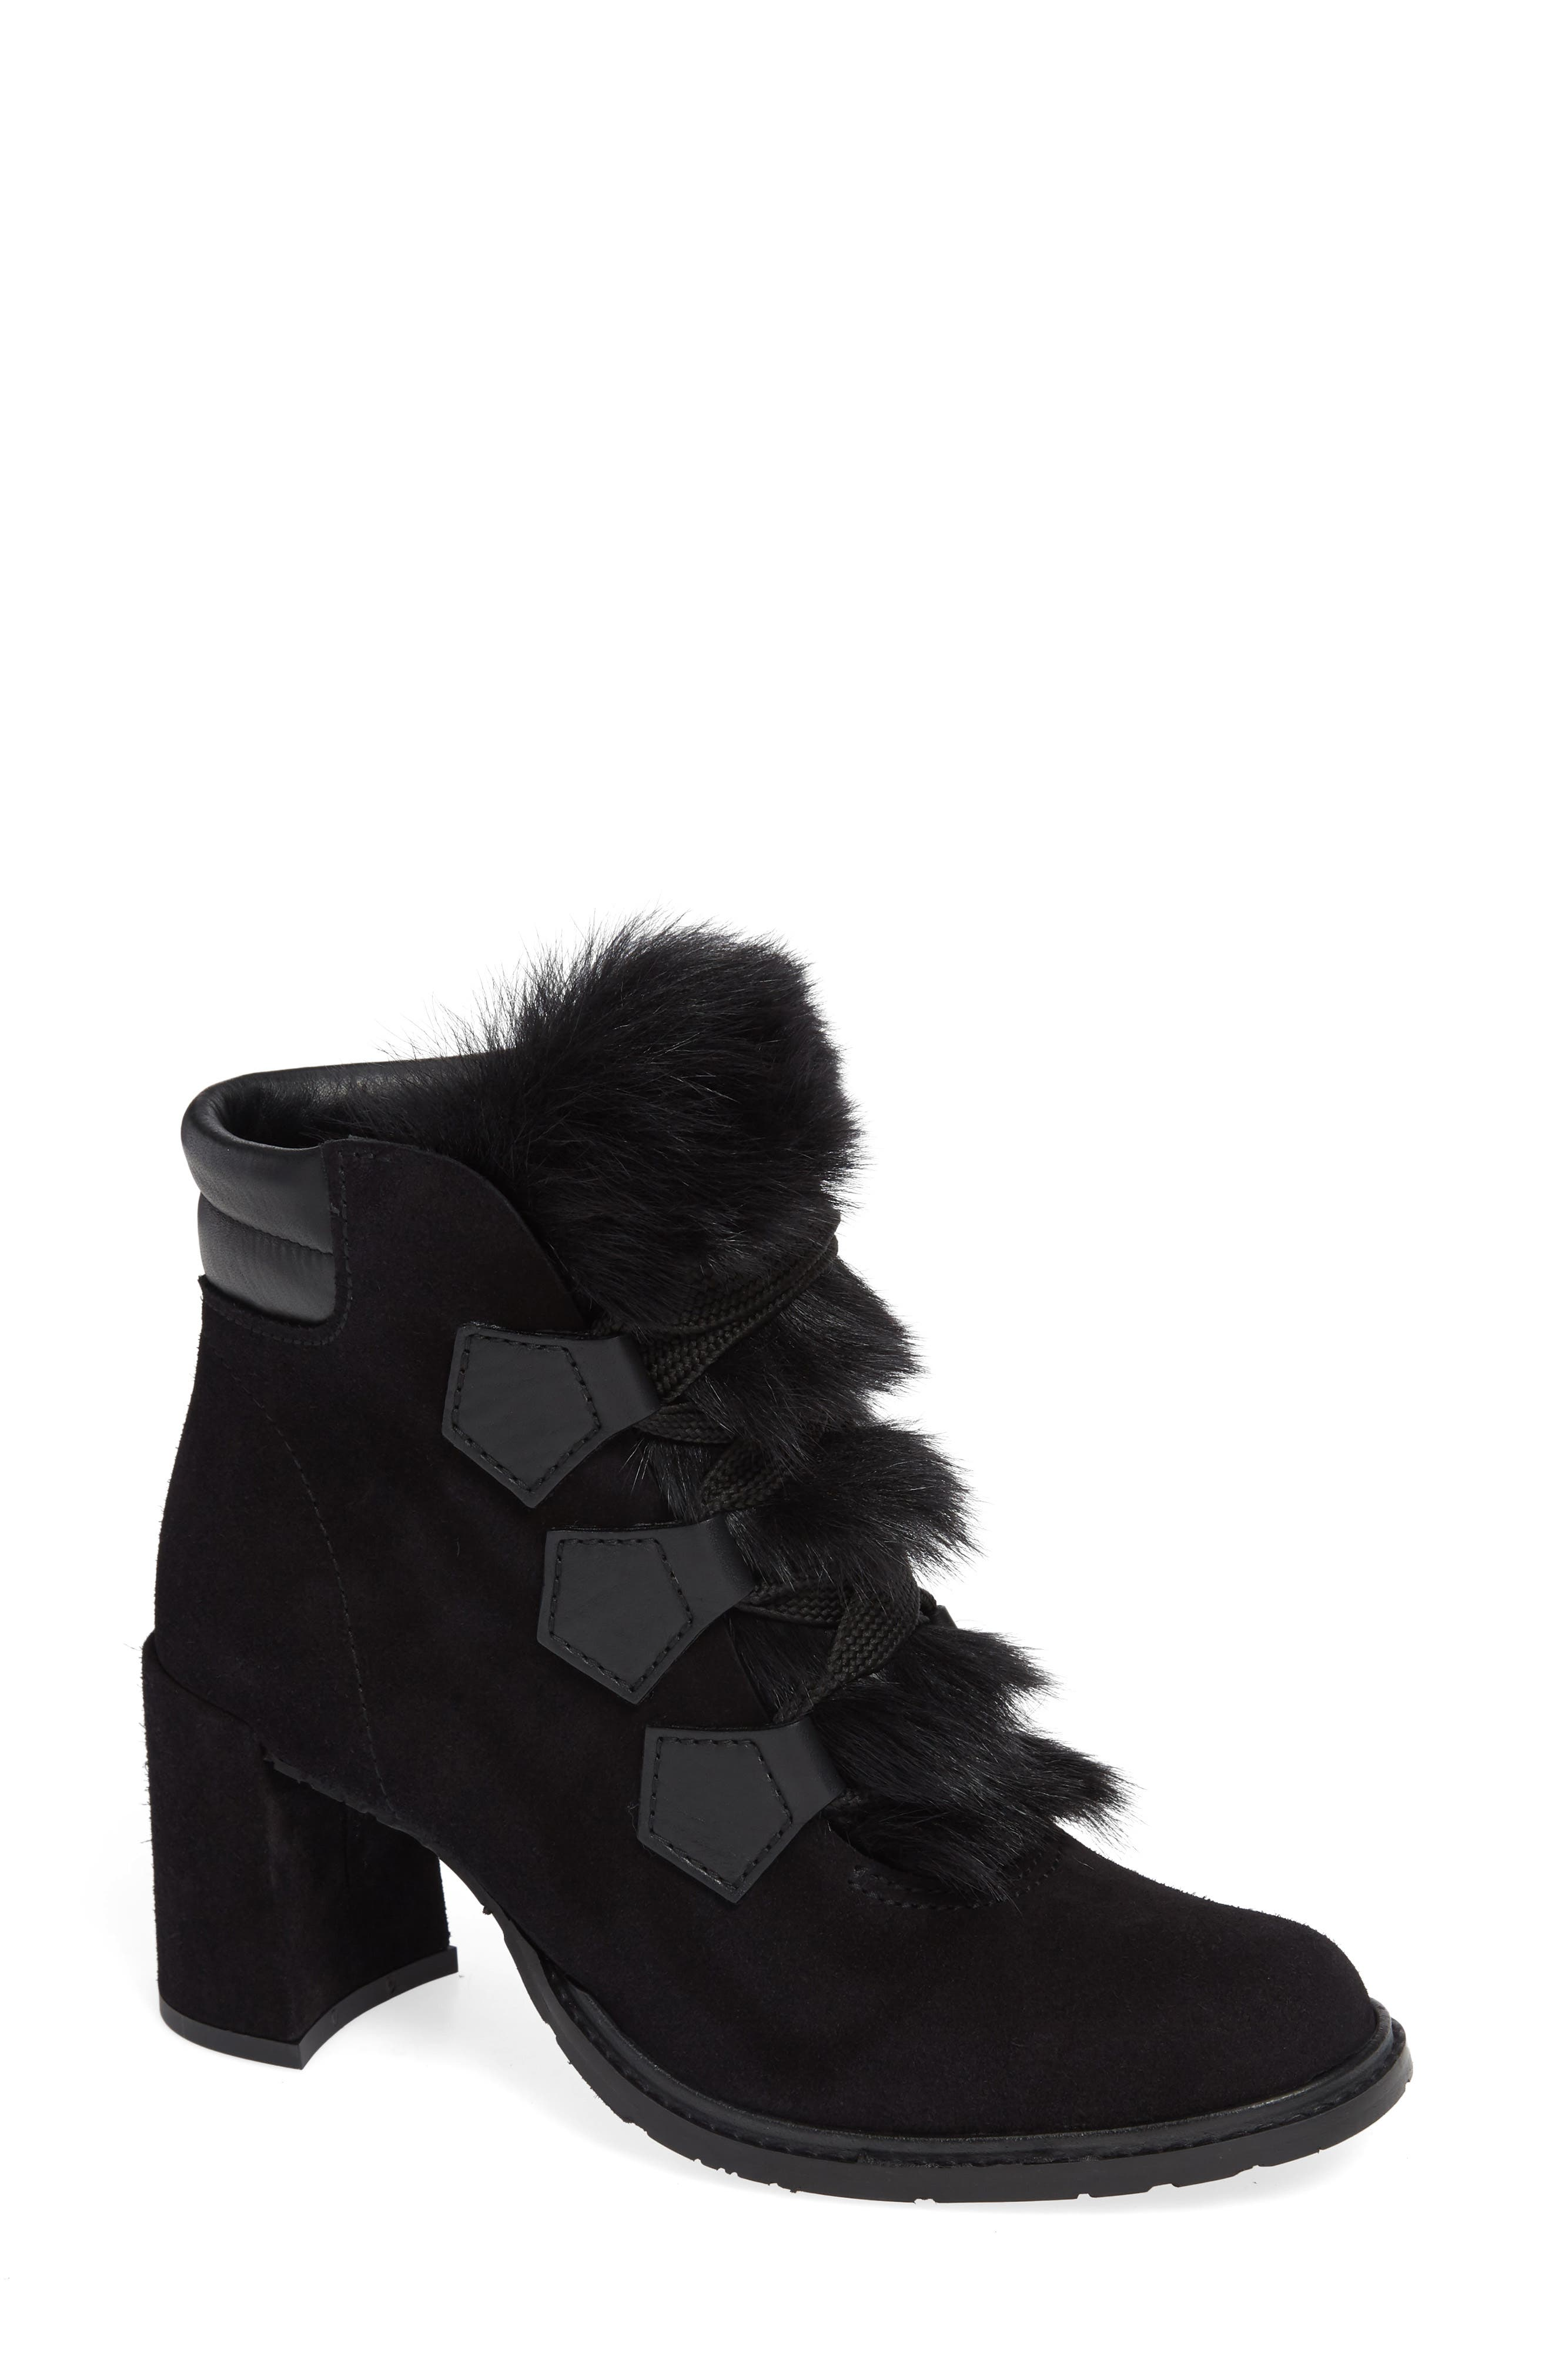 Wilmette Bootie with Genuine Shearling Trim,                         Main,                         color, BLACK CHURRA